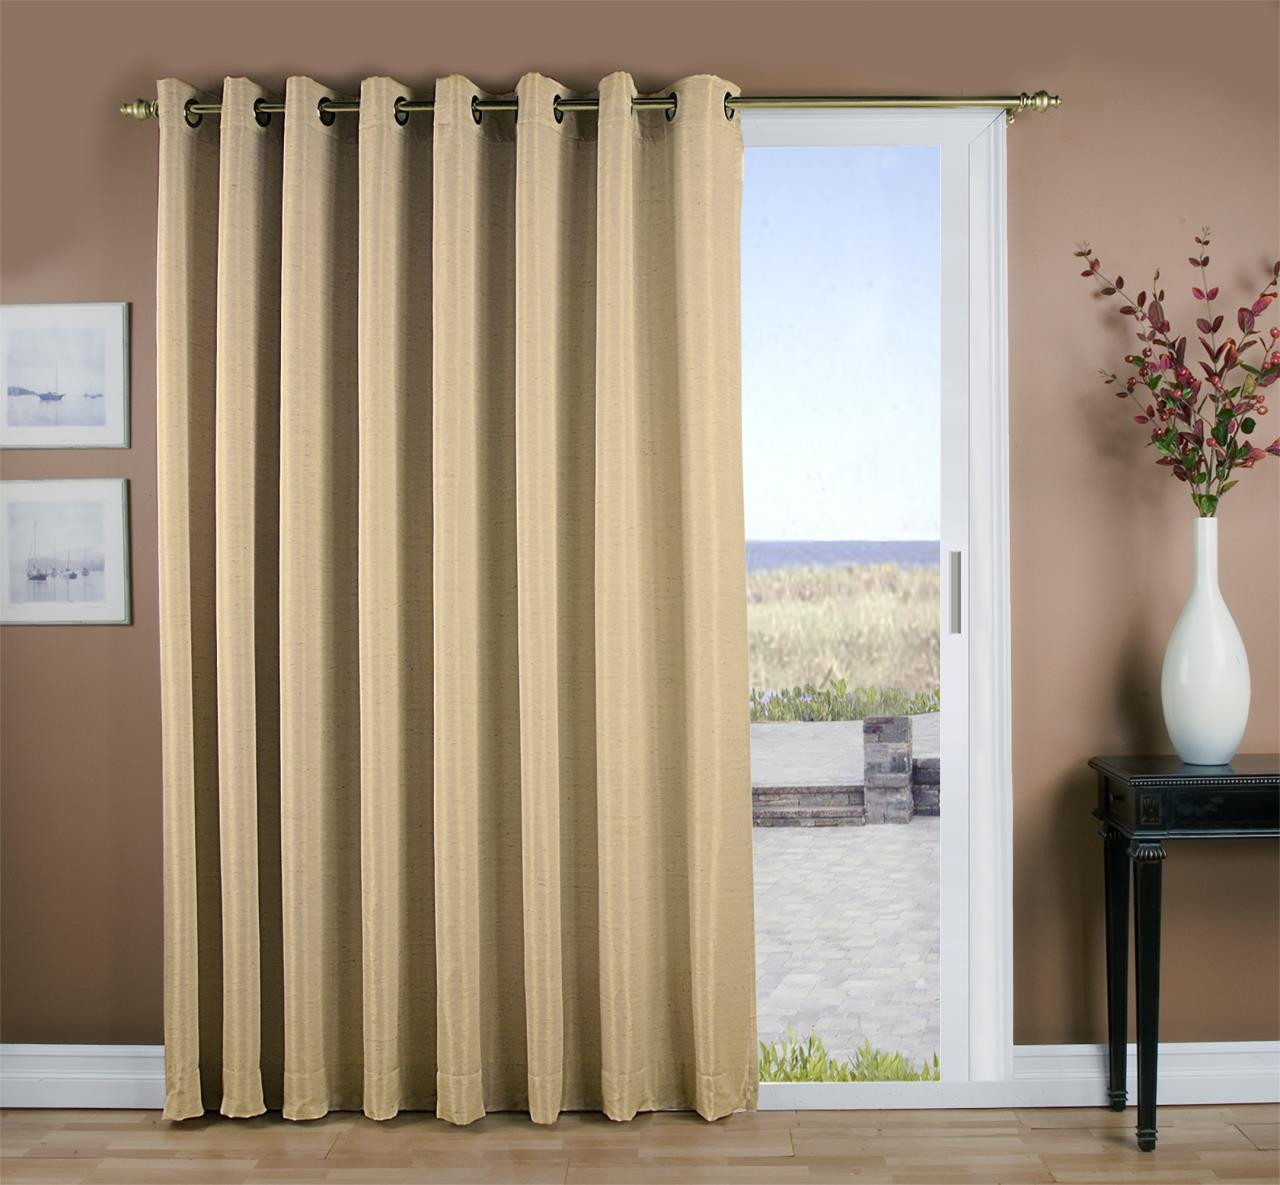 Grasscloth Insulated Solid Color Grommet Patio Curtain Panel w/ Wand - 842249028892